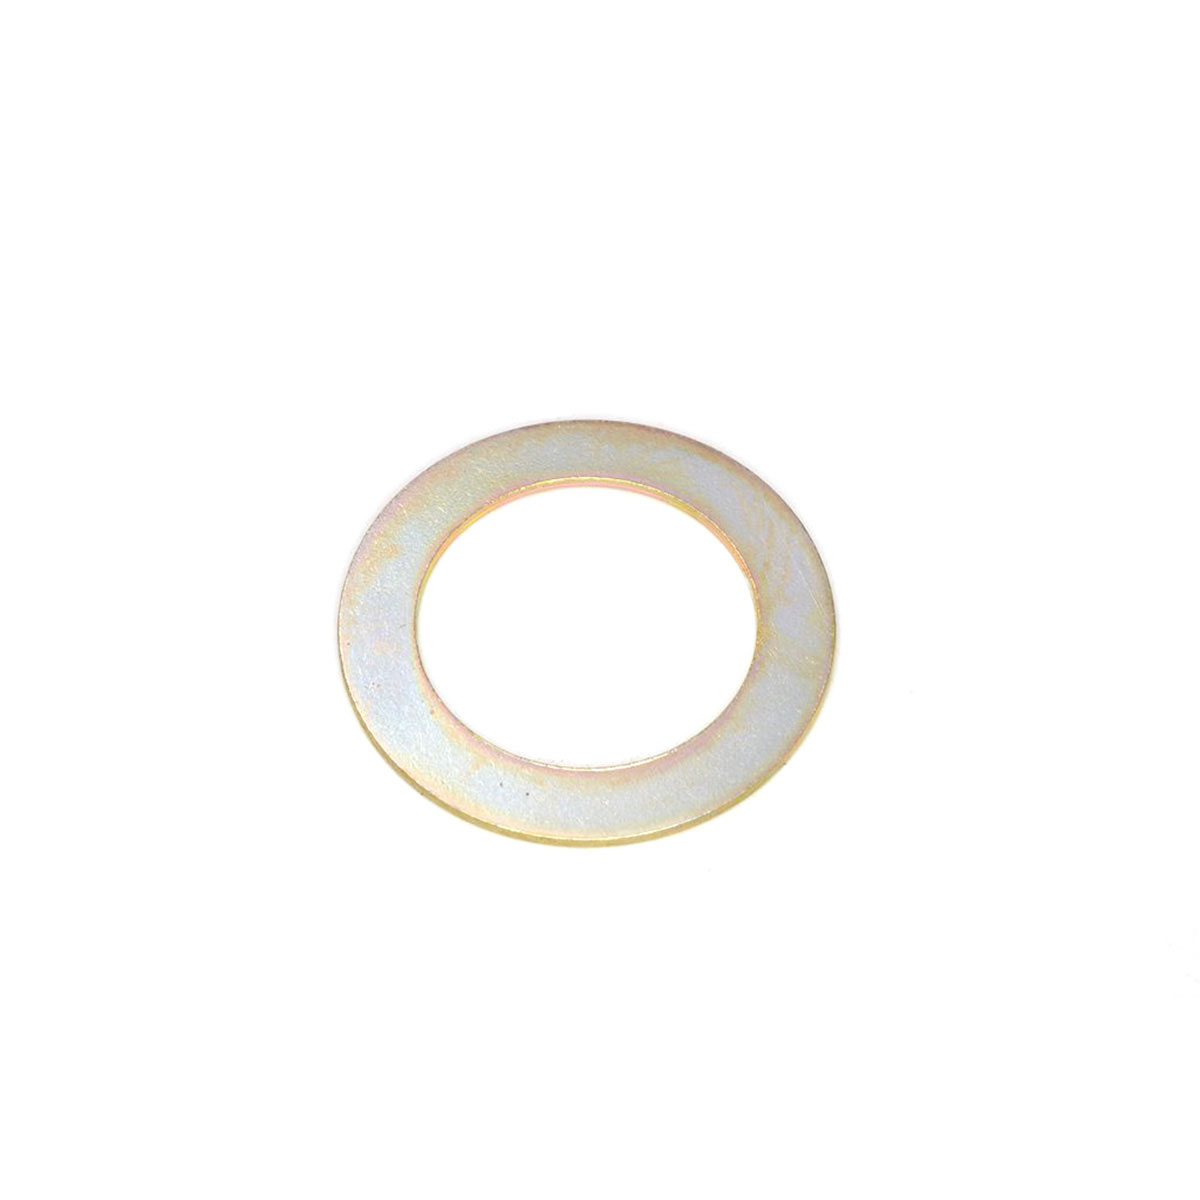 Scag Flat Washer 1 1.062X1.5X.048 04041-14